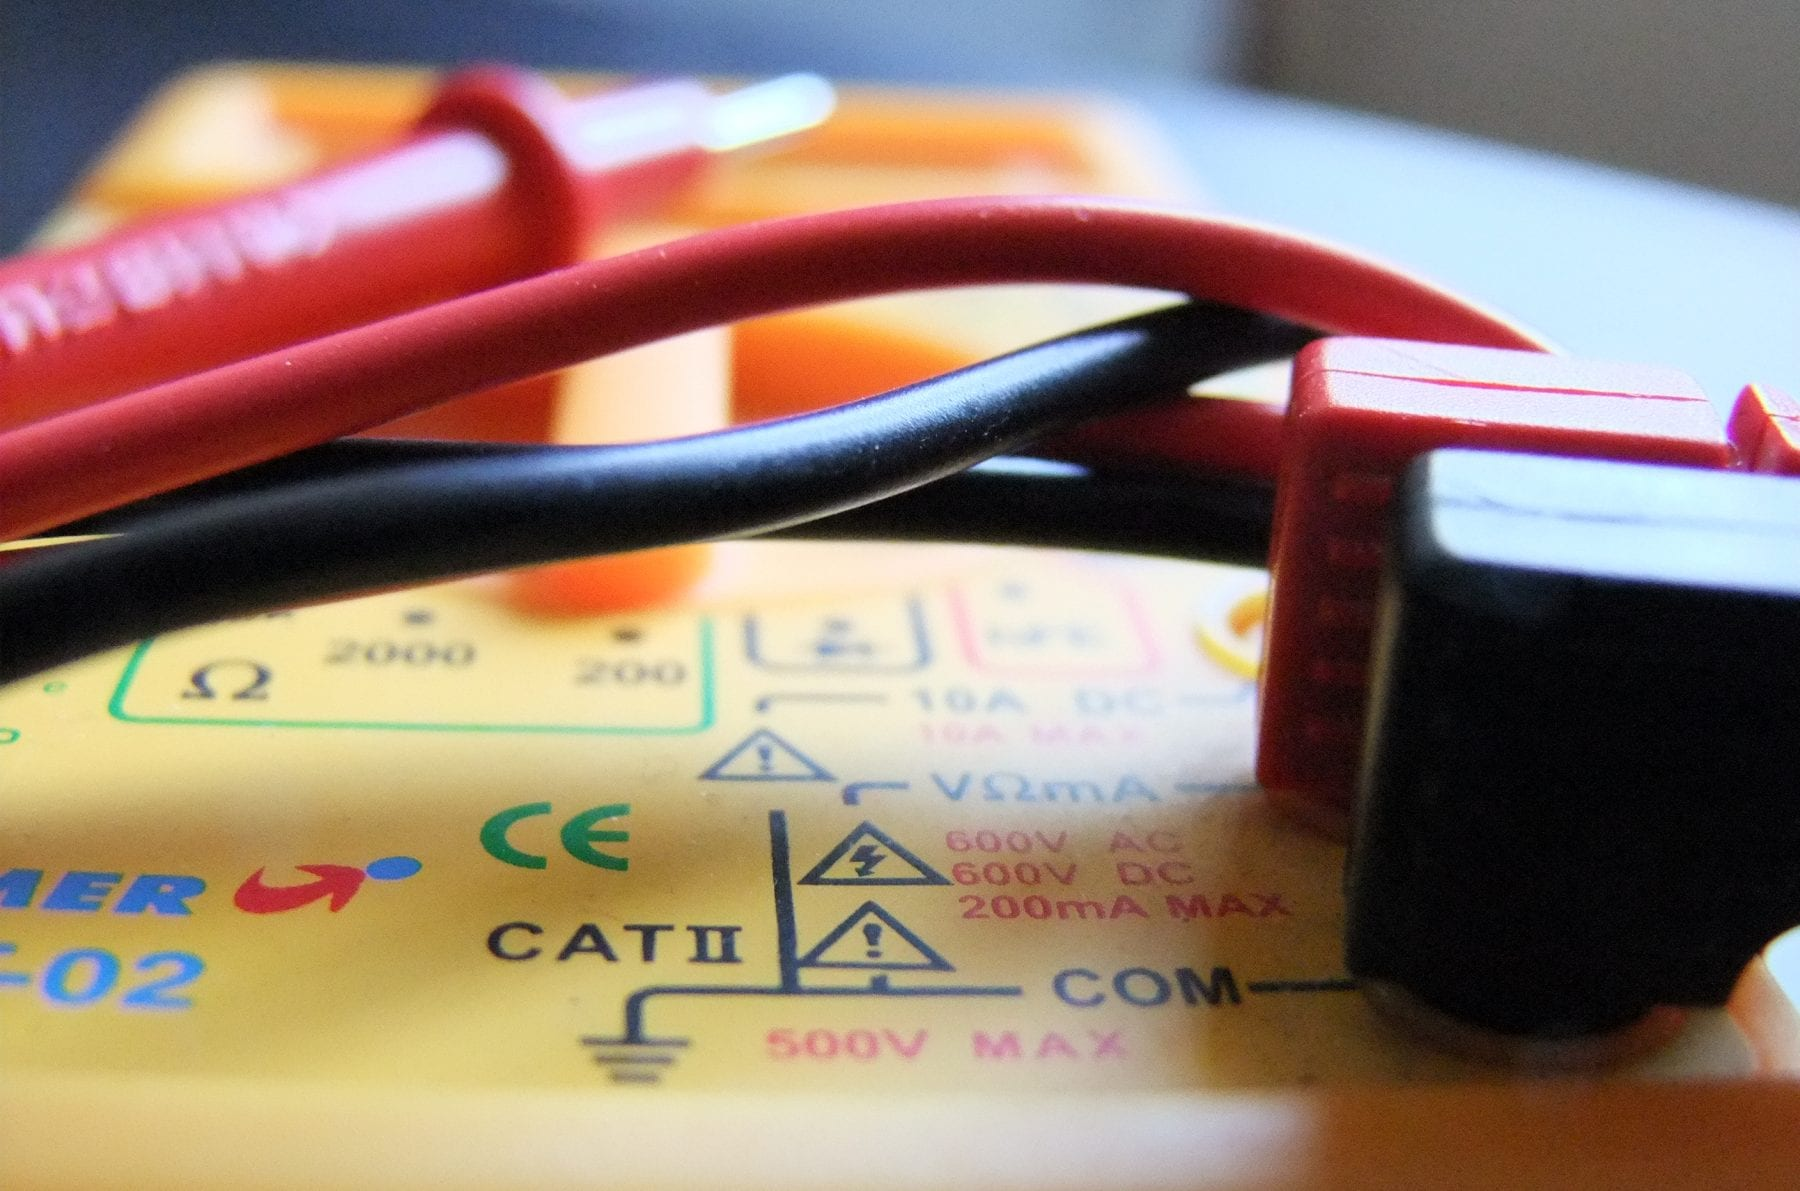 symbols on a multimeter